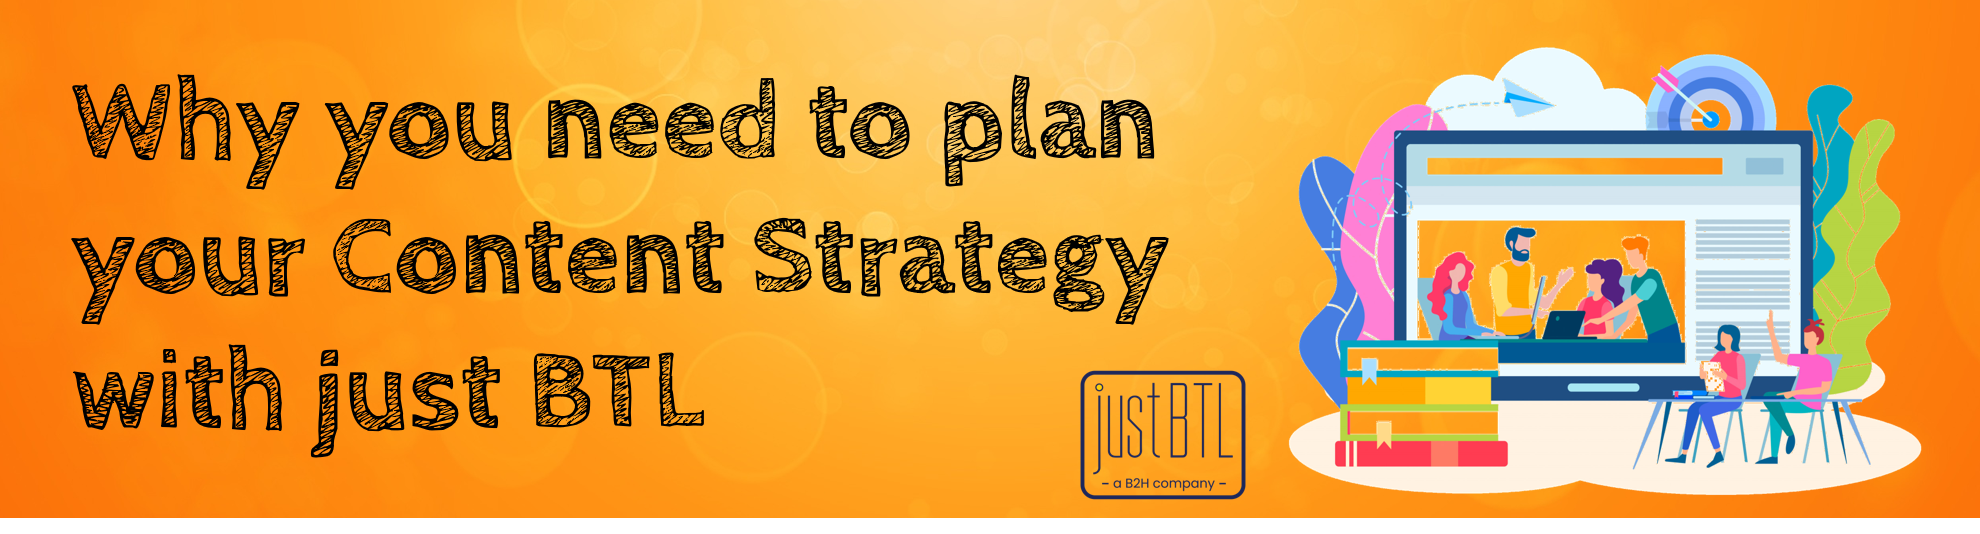 📍 WHY YOU NEED TO PLAN YOUR CONTENT STRATEGY WITH JUST BTL